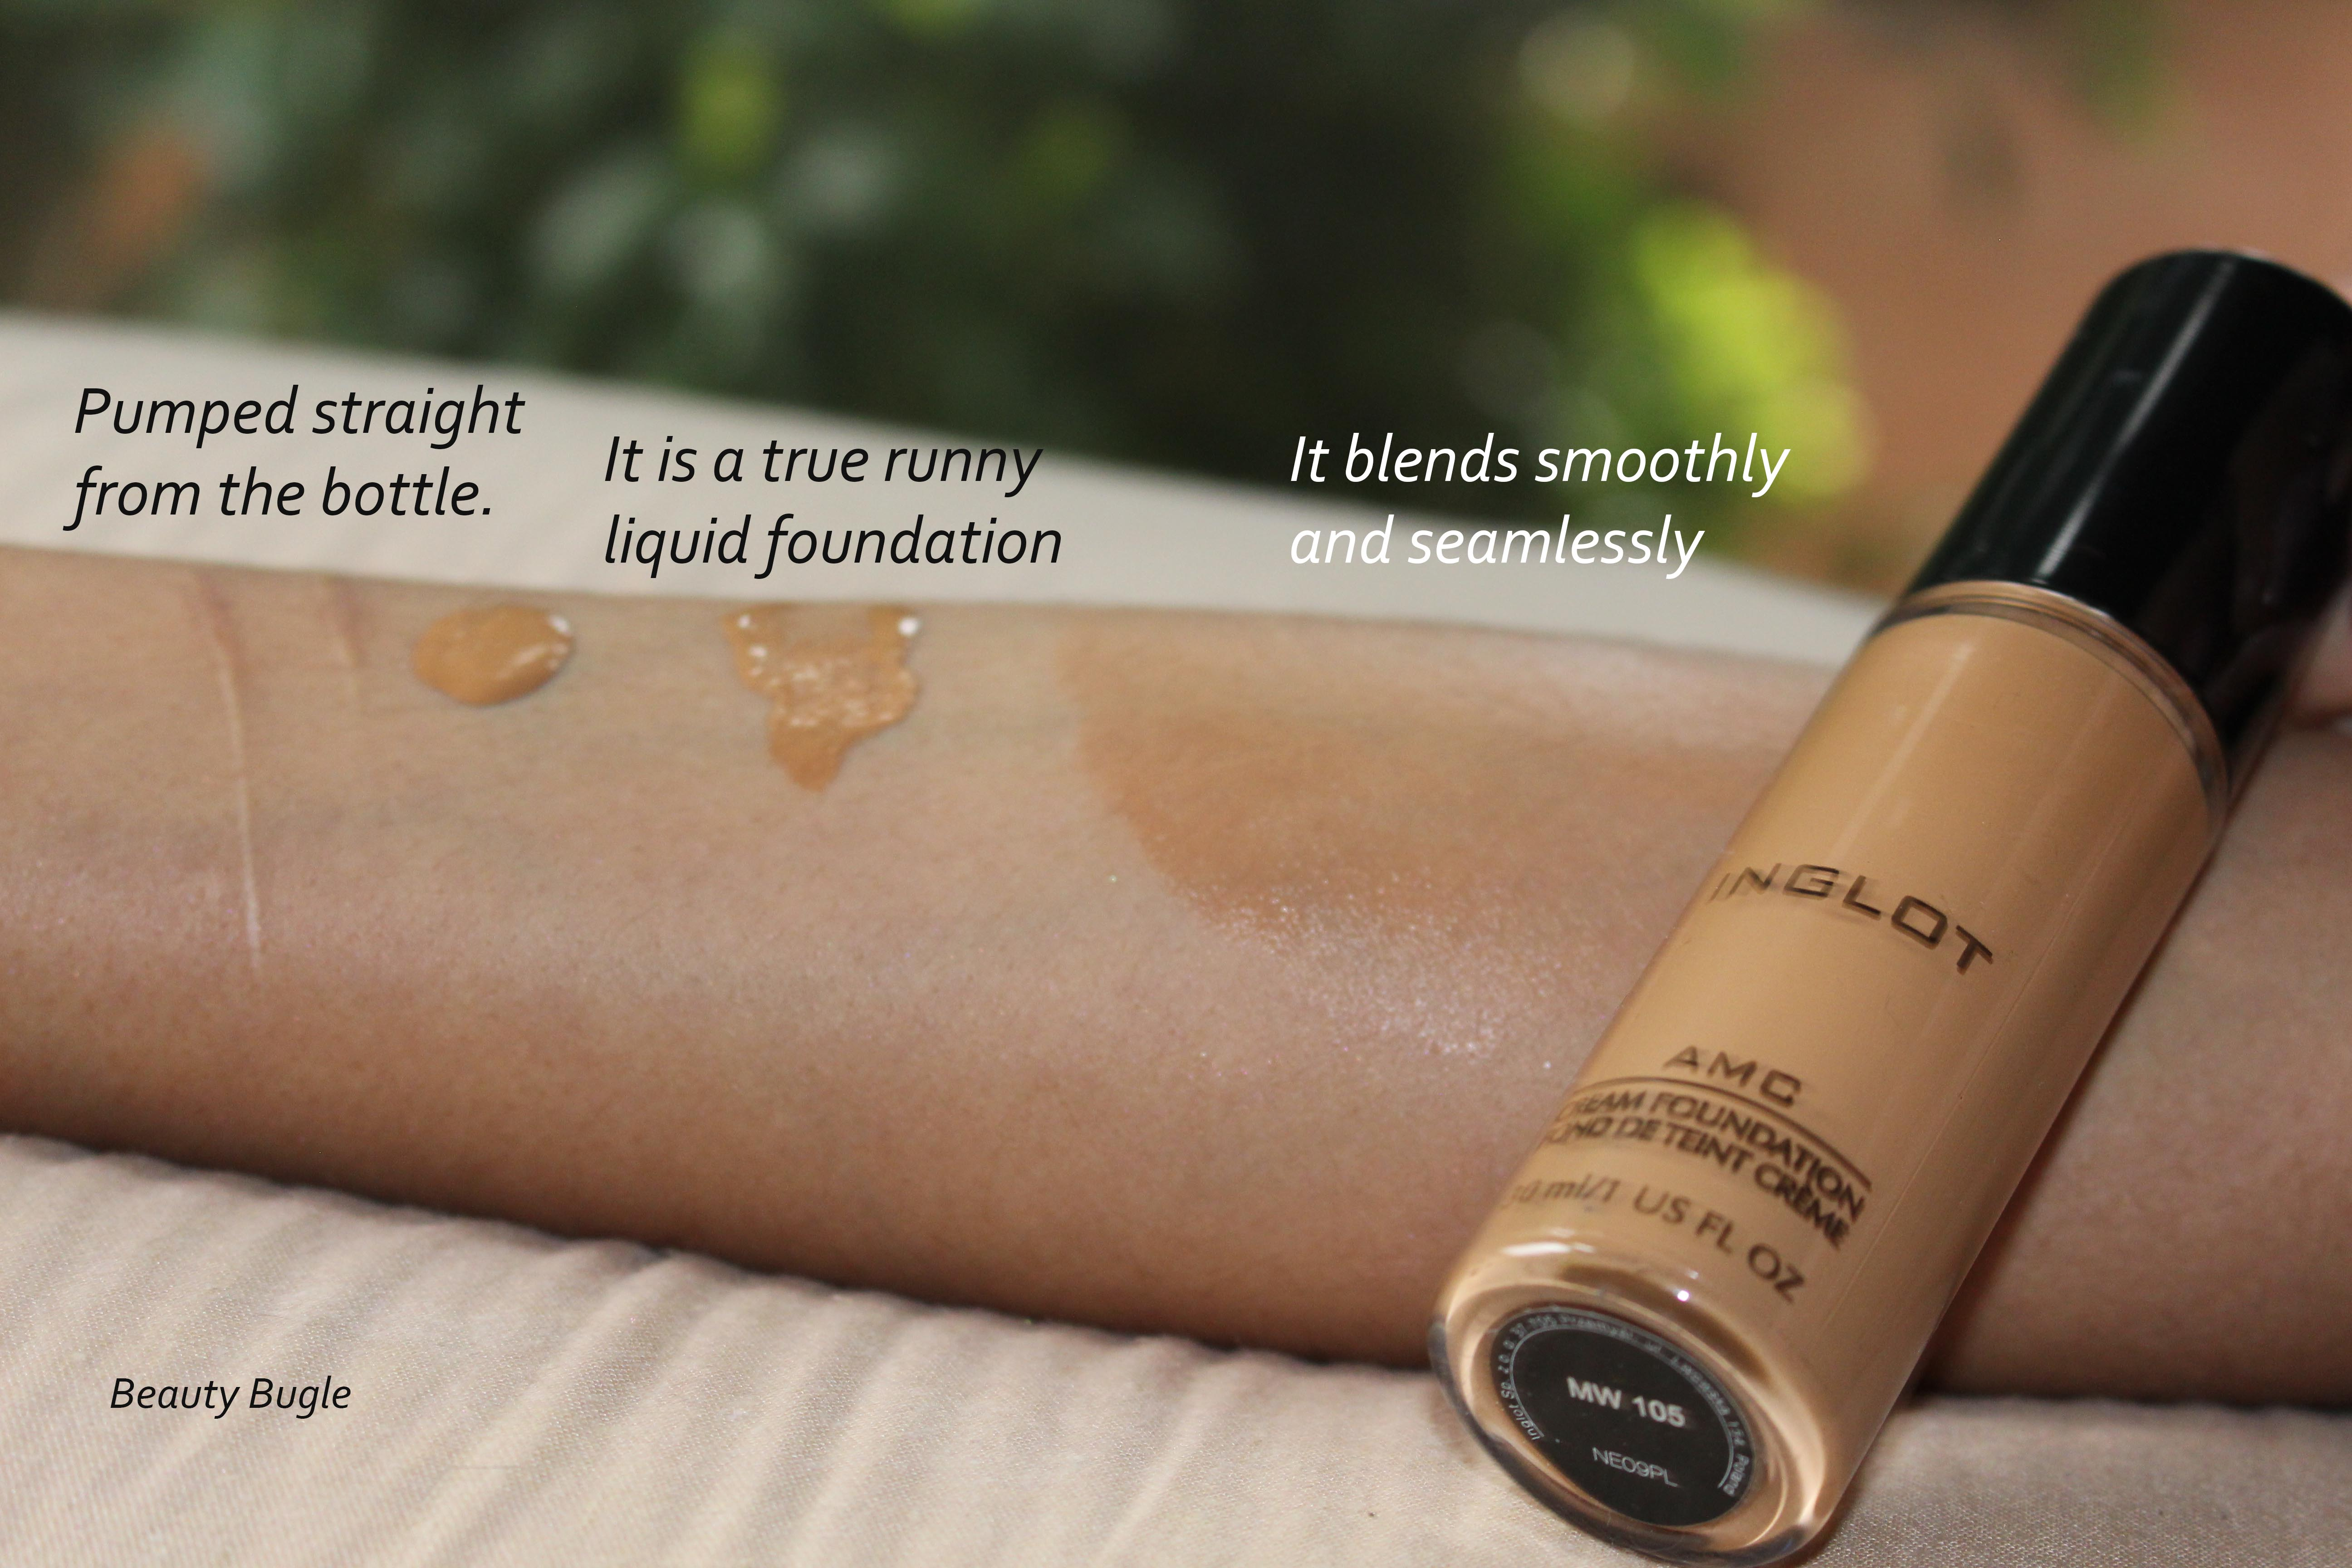 The luminosity of this foundation is unreal and it blends seamlessly.